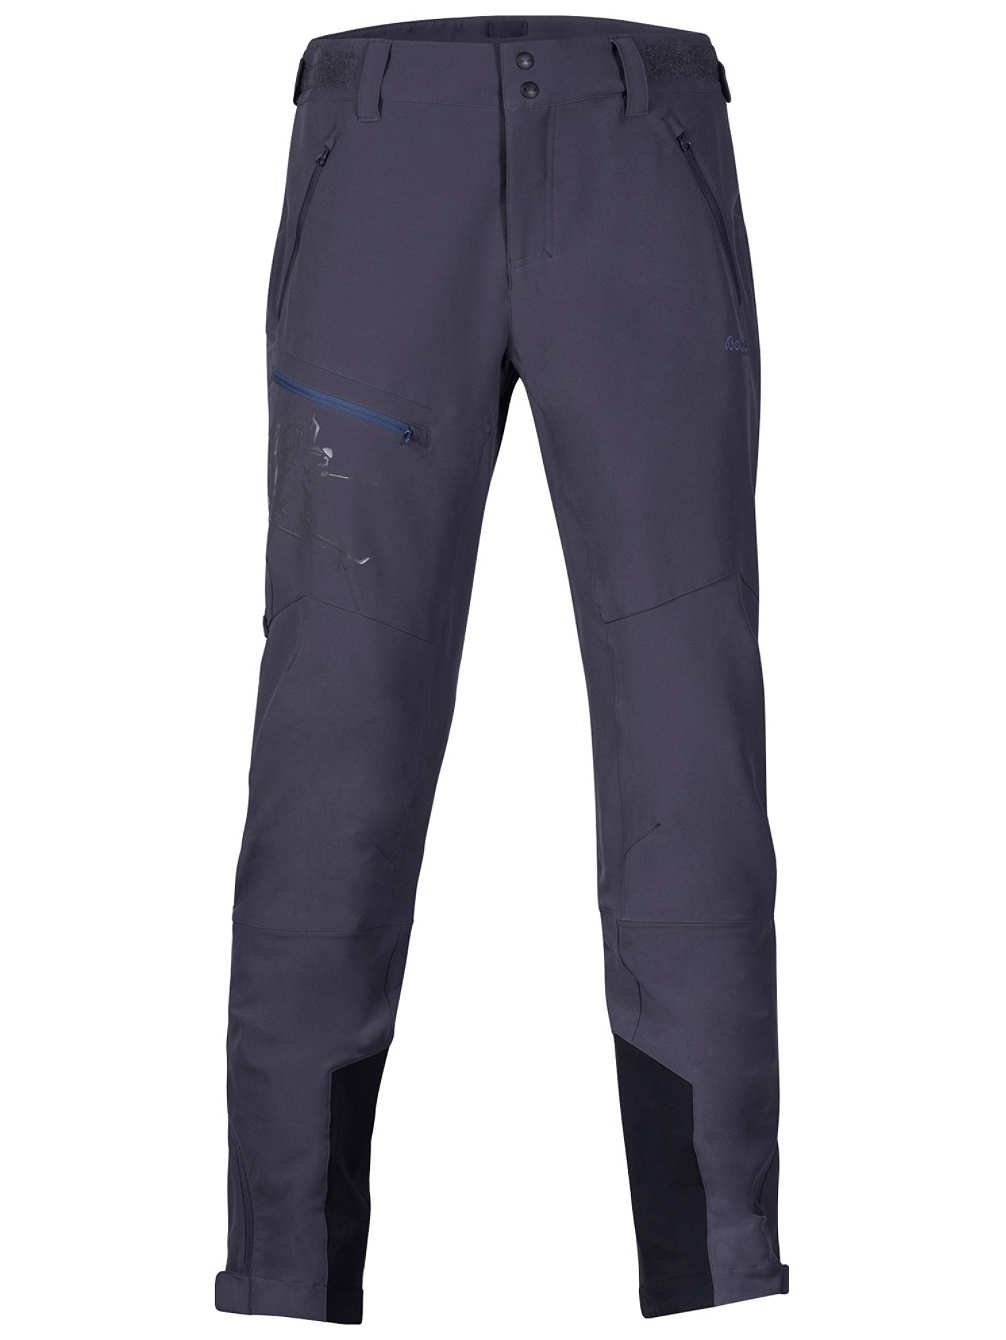 Bergans Osatind Pants Men Night Blau/Dusty Blau 2017 Hose lang